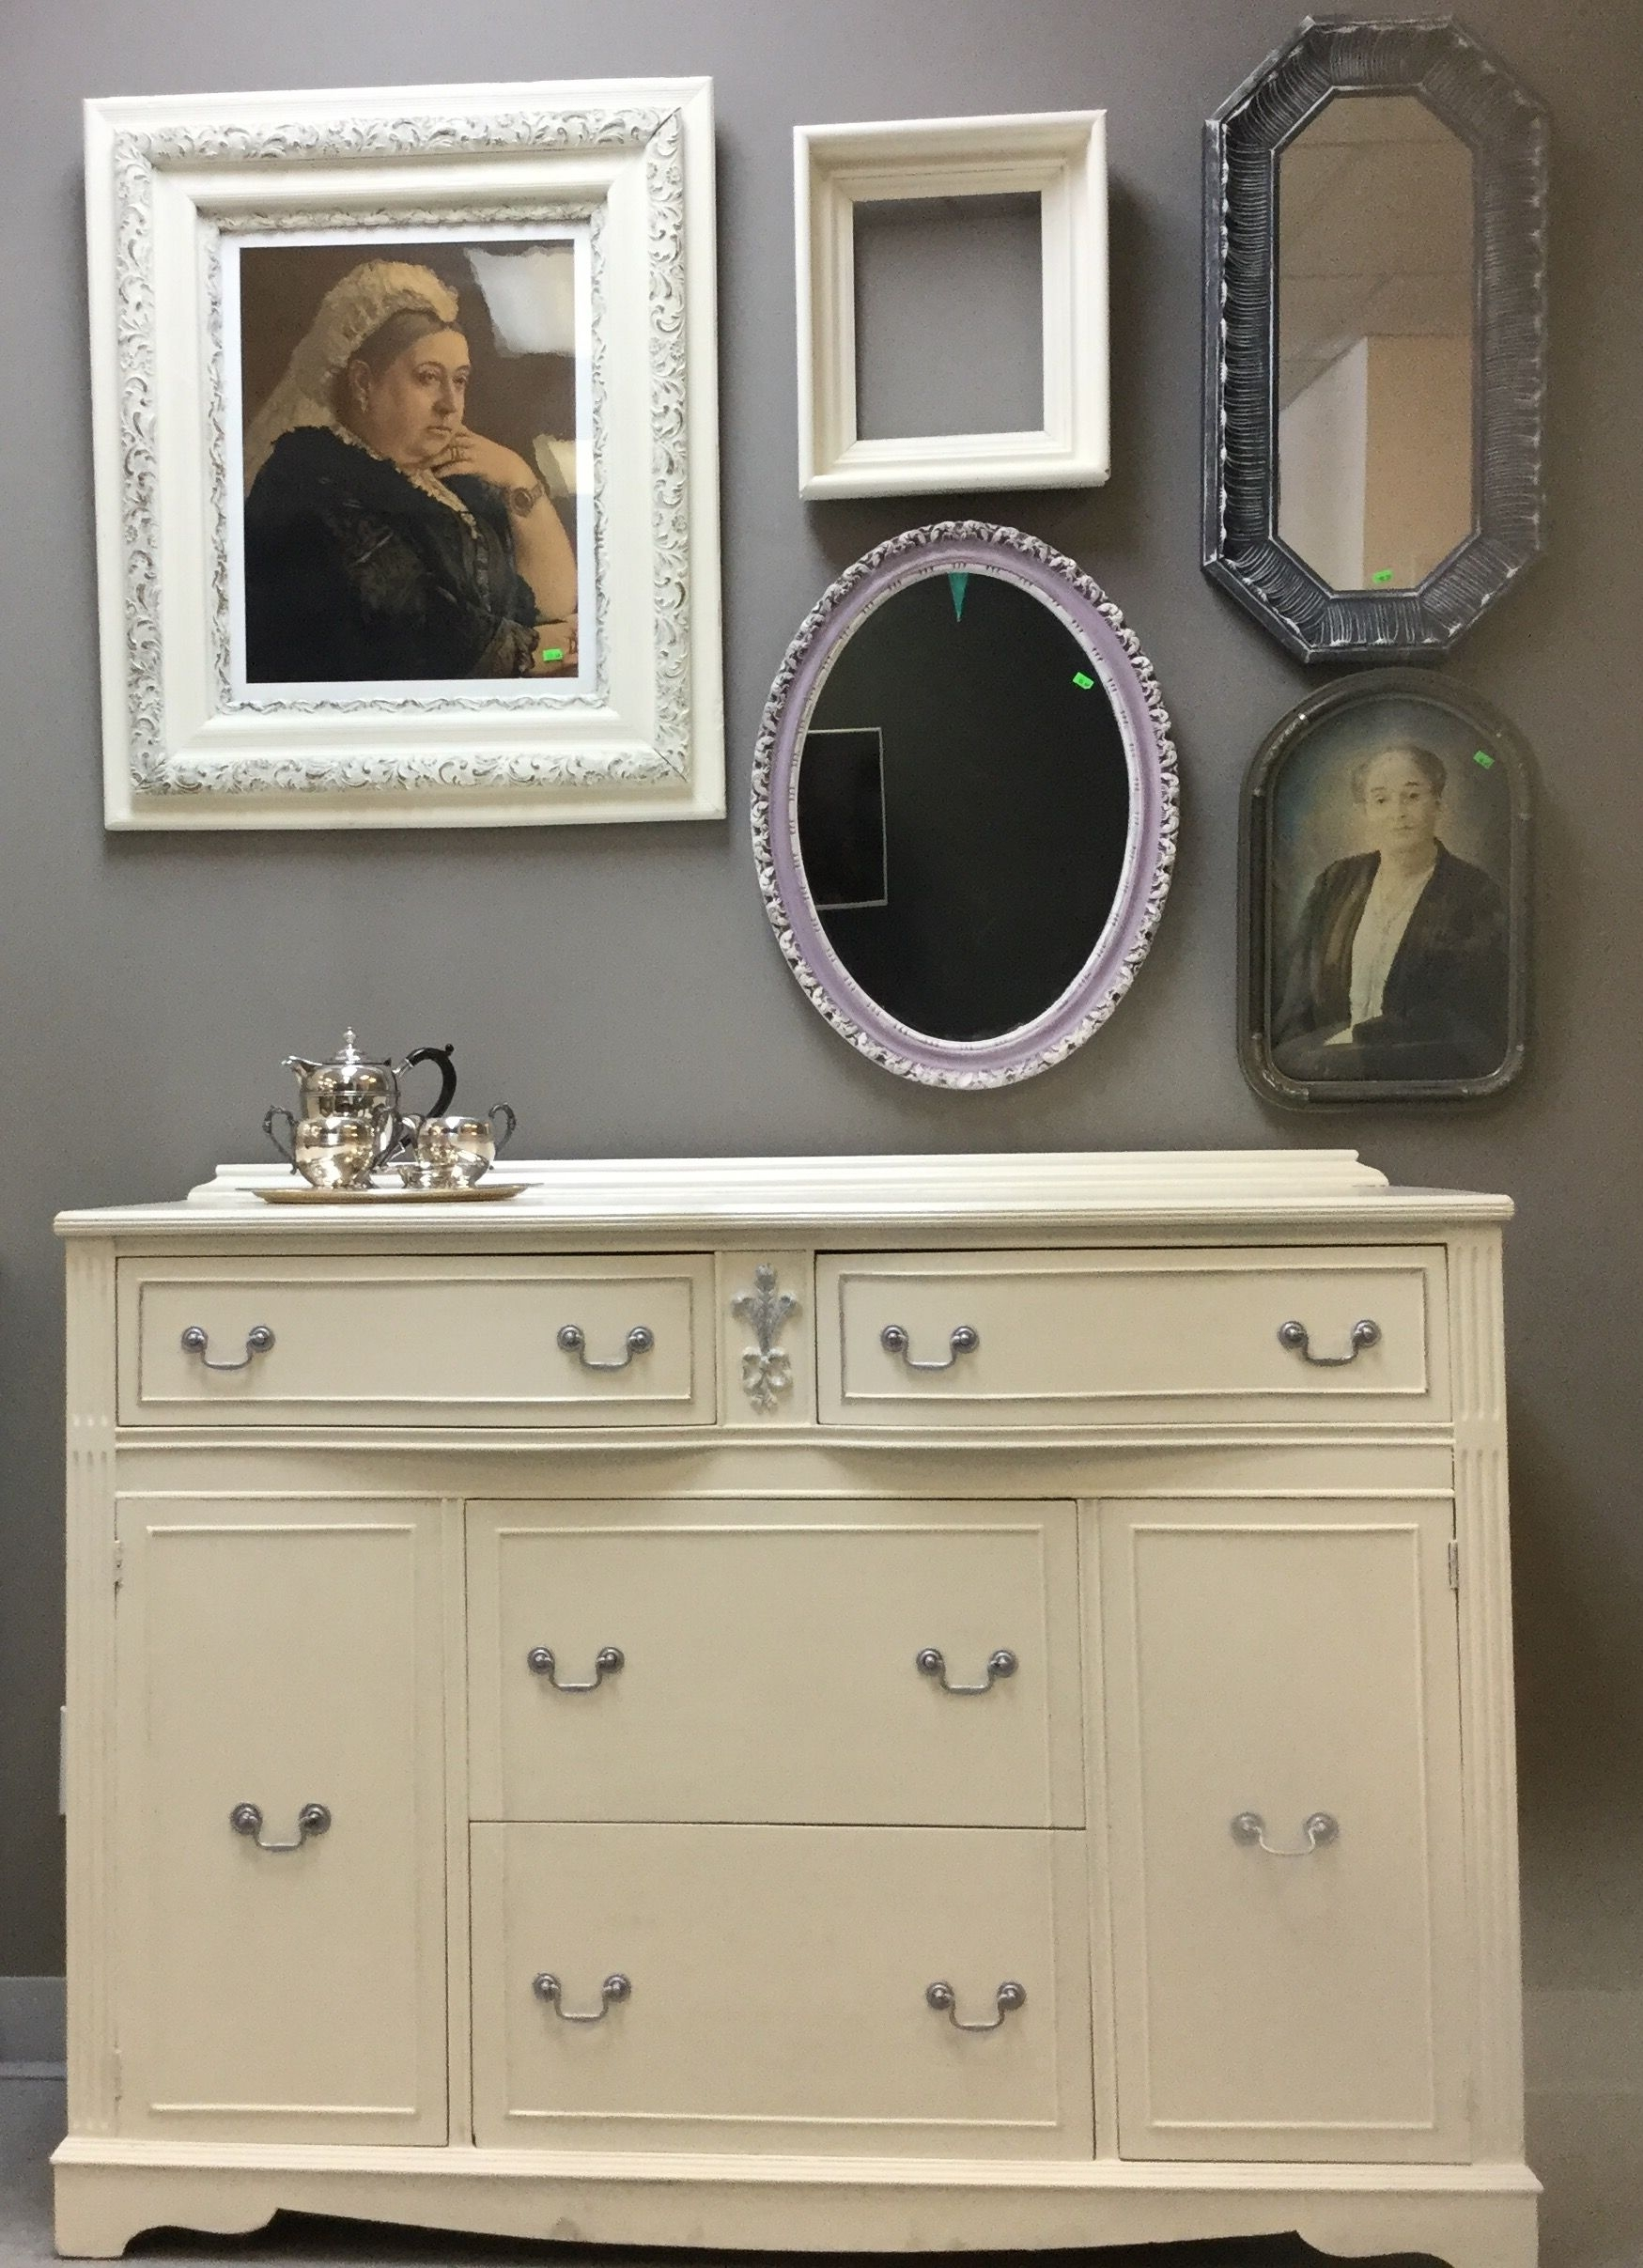 Classic Style Buffet Painted In Old White Chalkpaintannie Sloan Within 2018 Satin Black & Painted White Sideboards (View 7 of 20)